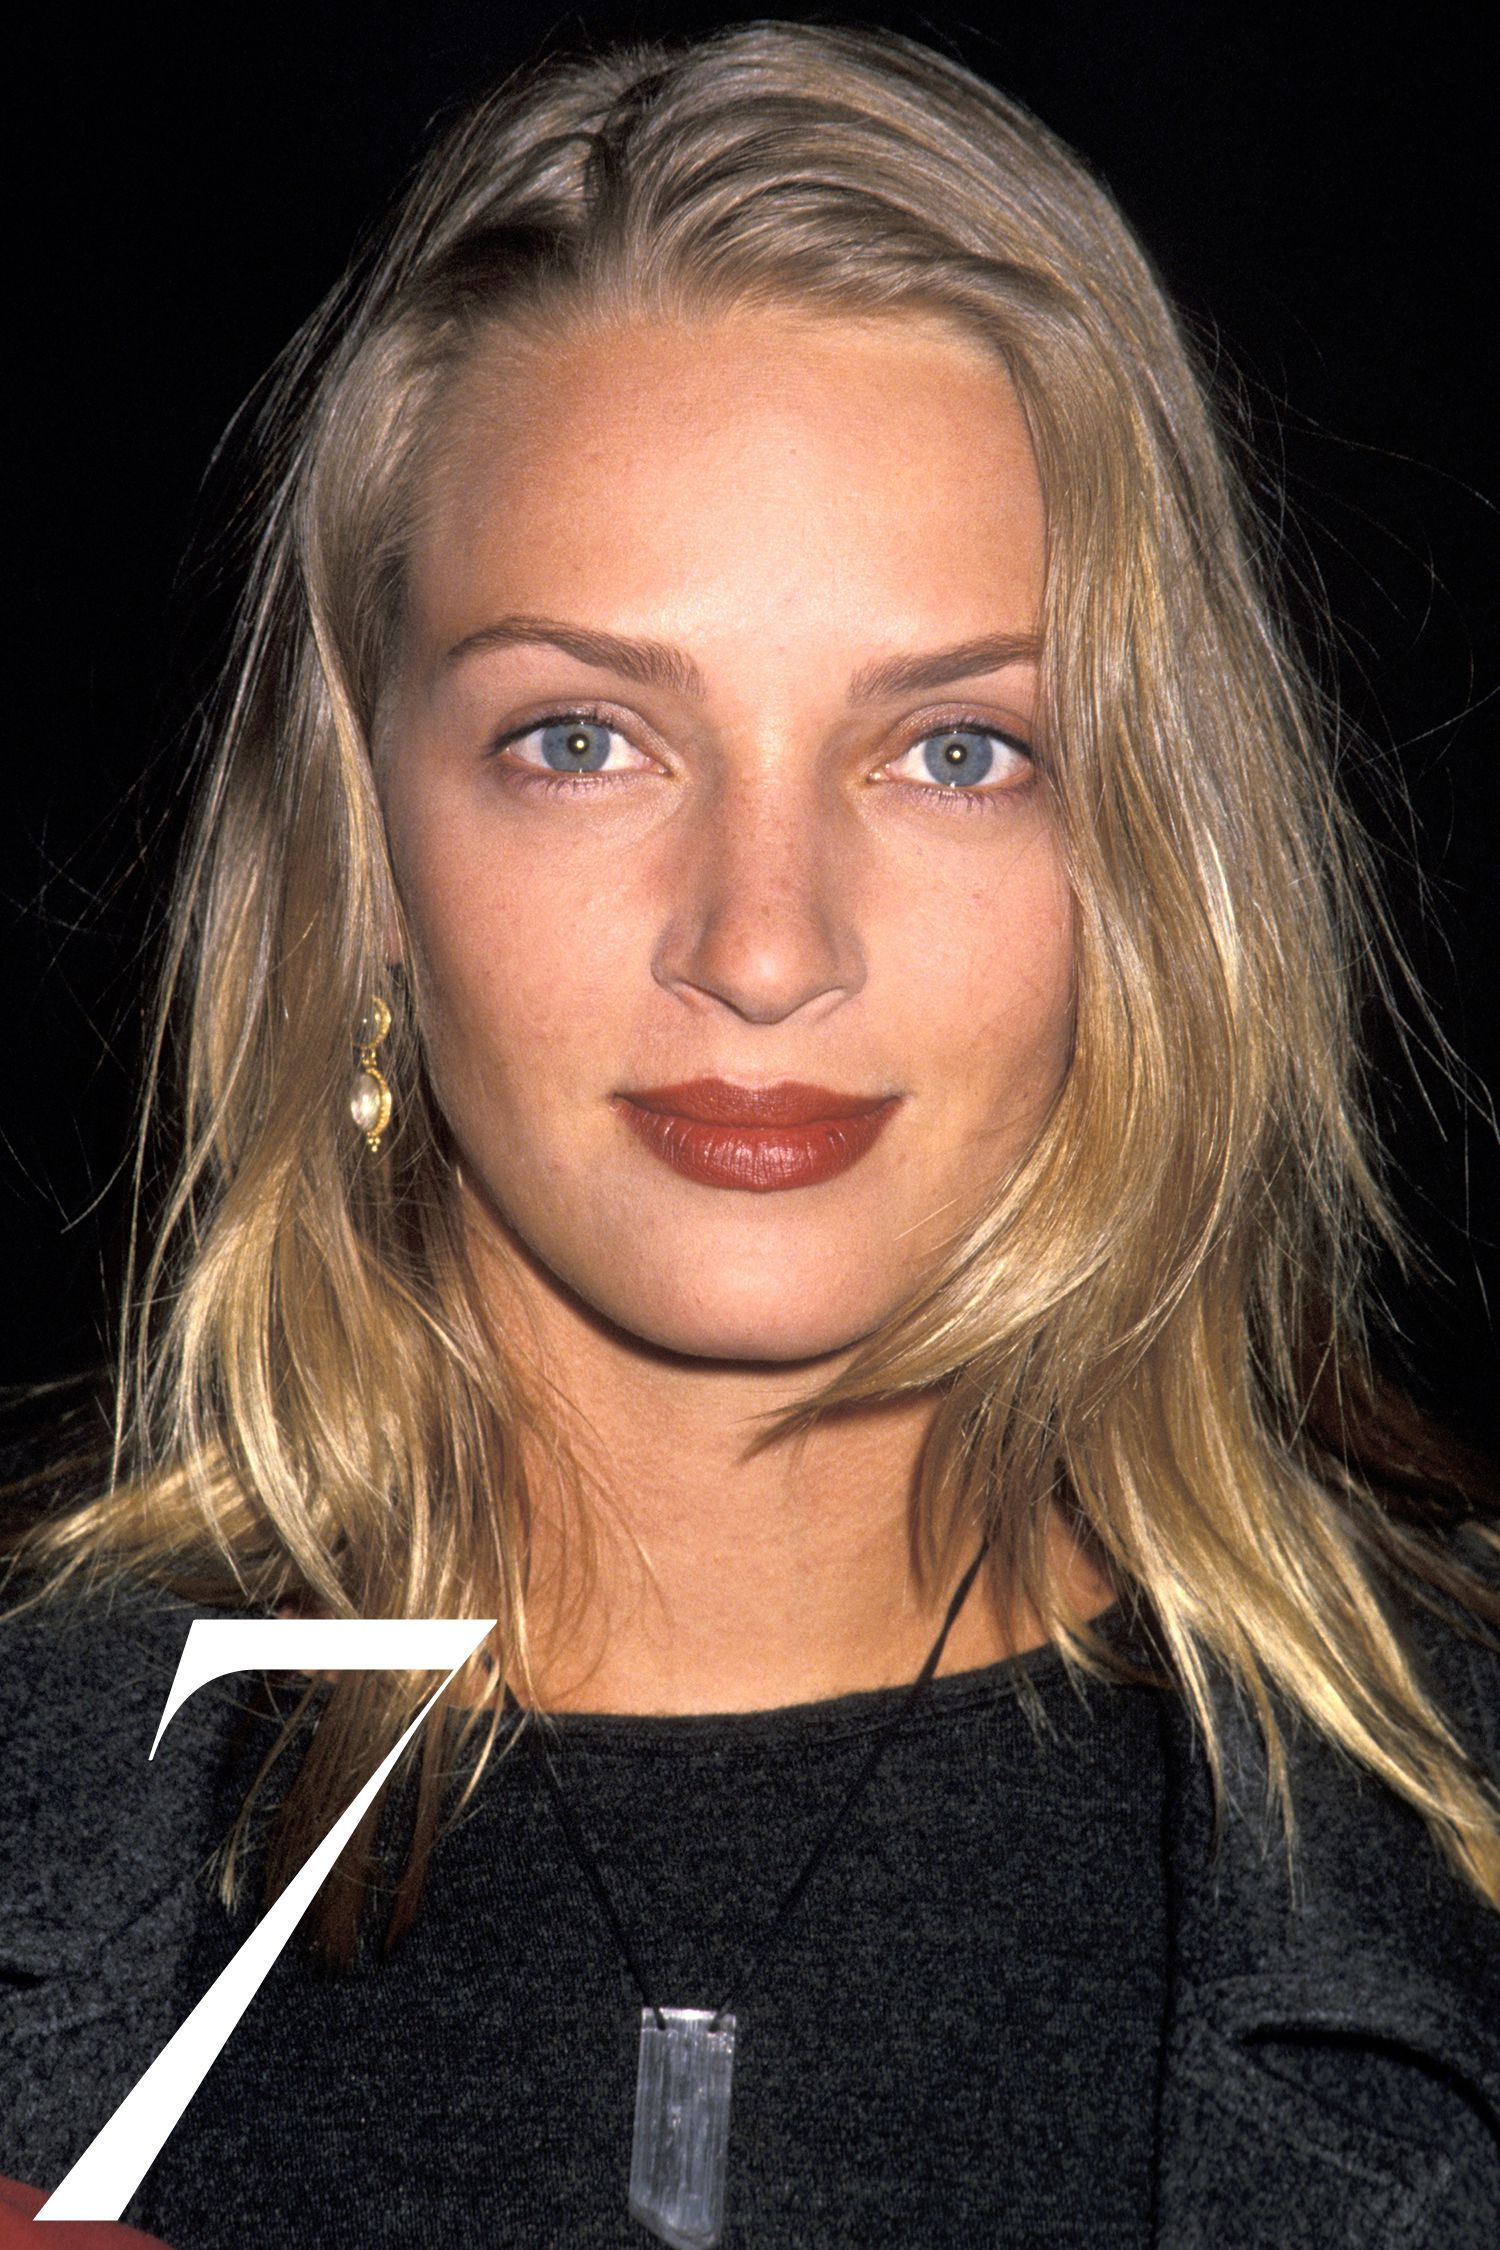 Image Result For 90s Blonde Hair Uma Thurman Beauty Icons